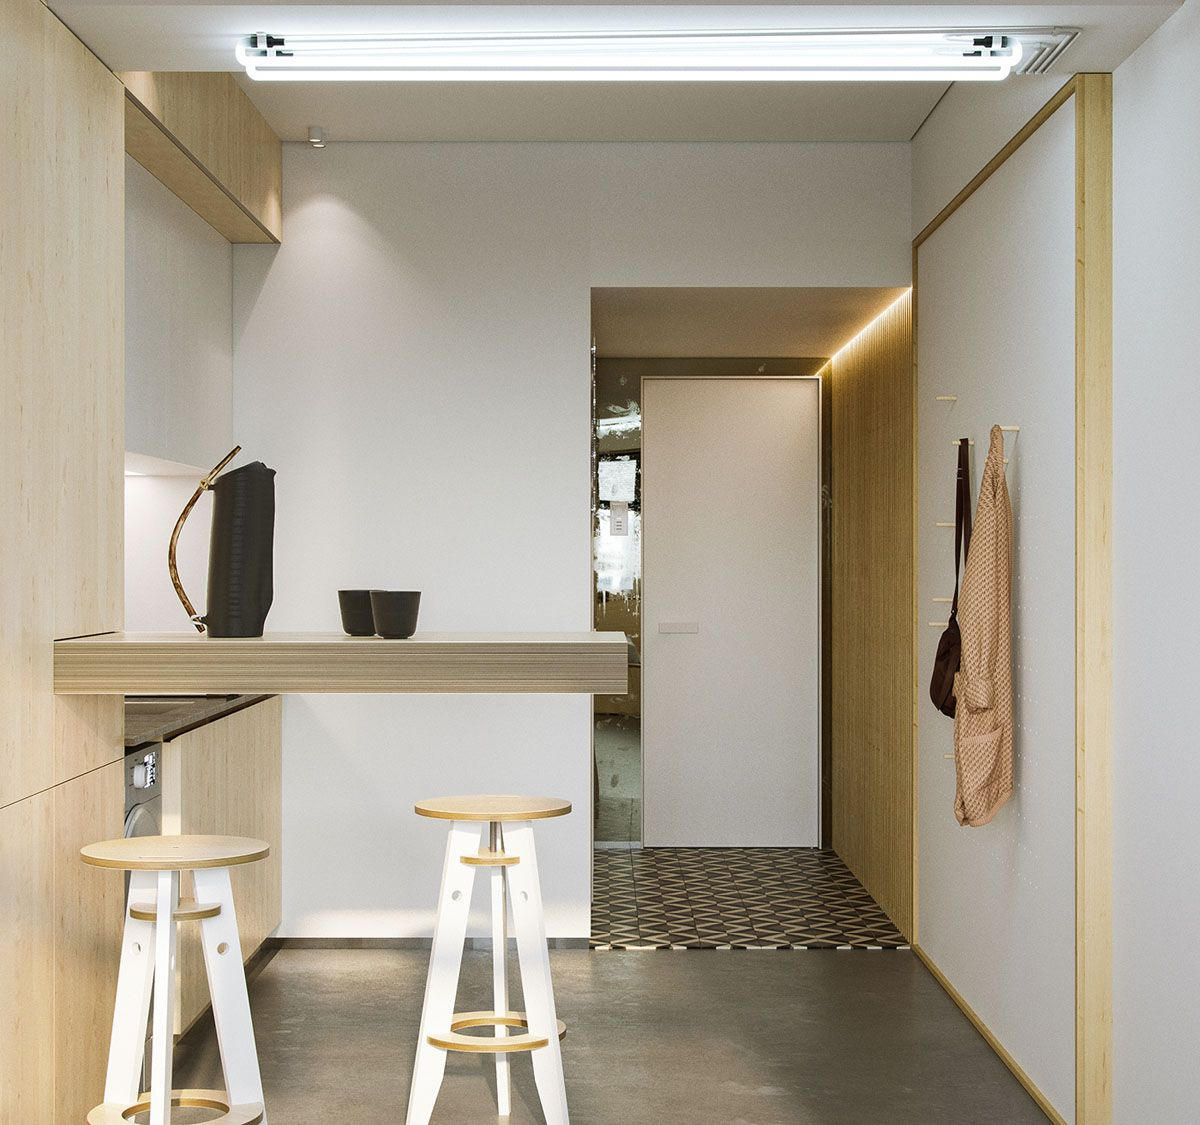 99 Diy Apartement Decorating Ideas On A Budget 23: Super Compact Spaces: A Minimalist Studio Apartment Under